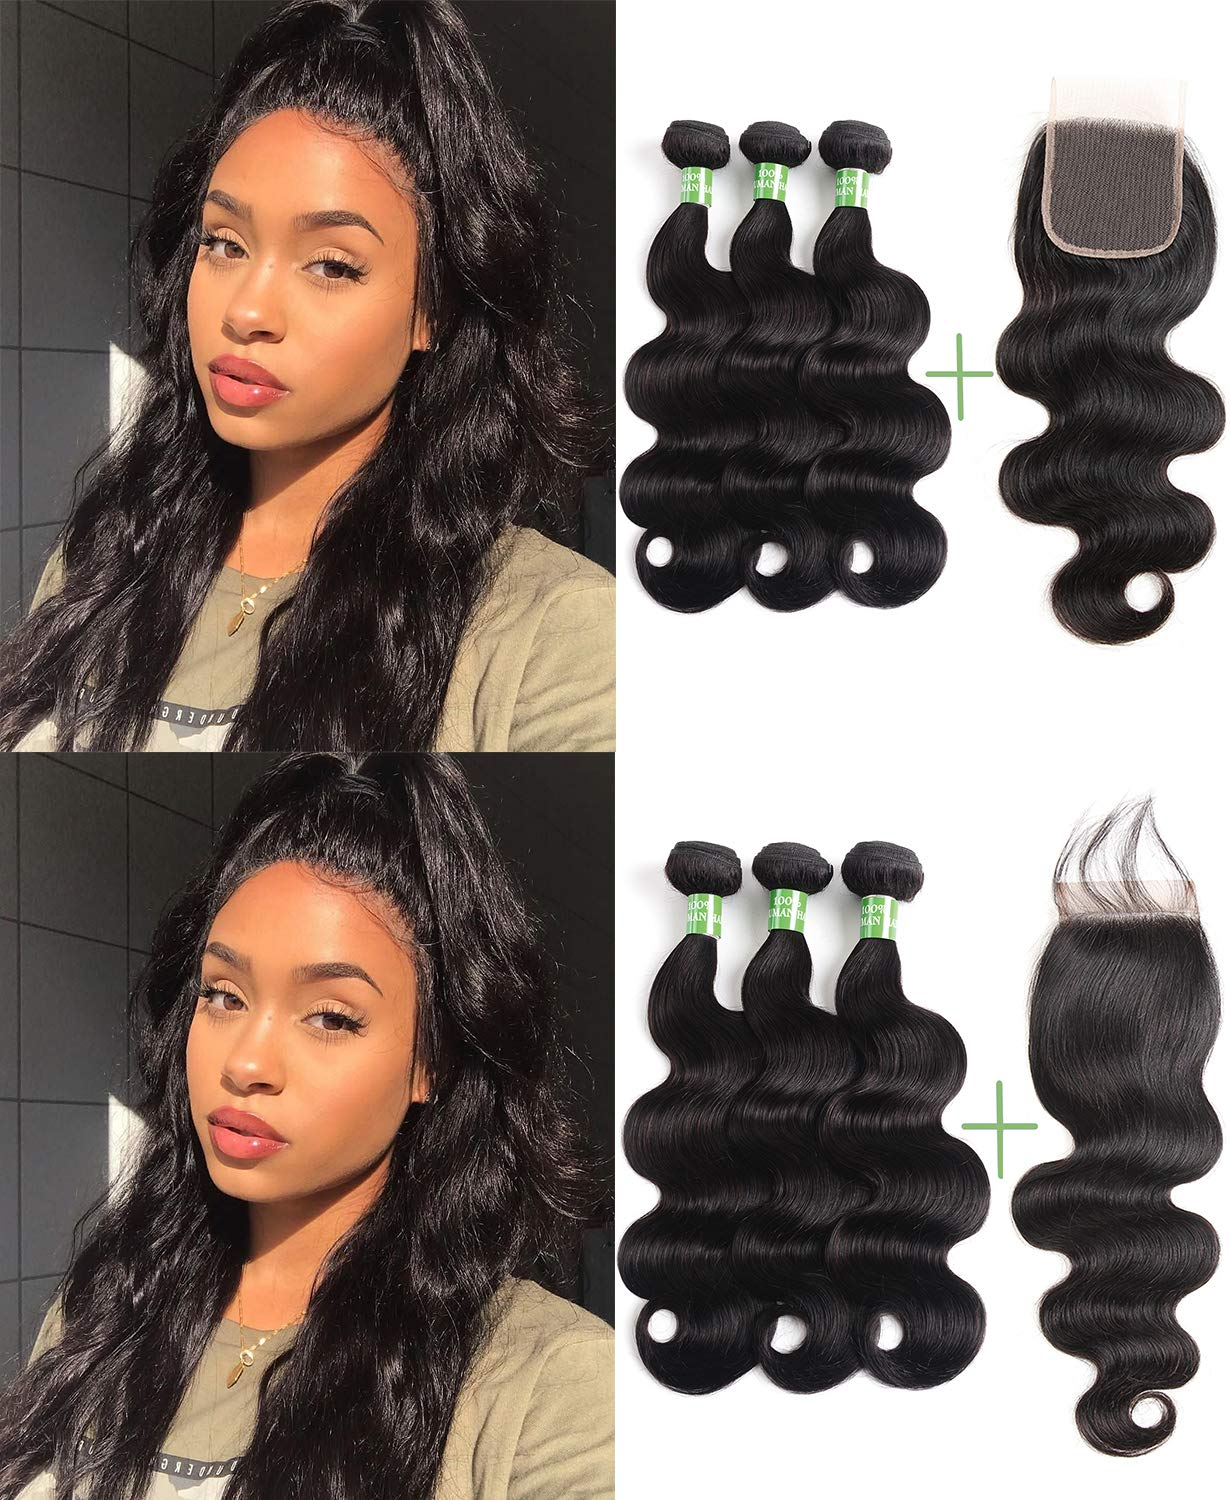 Beauty Youth Human Hair Bundles Body Wave With Closure 10 12 14 10 100 Unprocessed Virgin Brazilian Human Hair Bundles With Free Part Lace Closure Body Wave 3 Bundles Hair Weave Natural Color Beauty Amazon Com